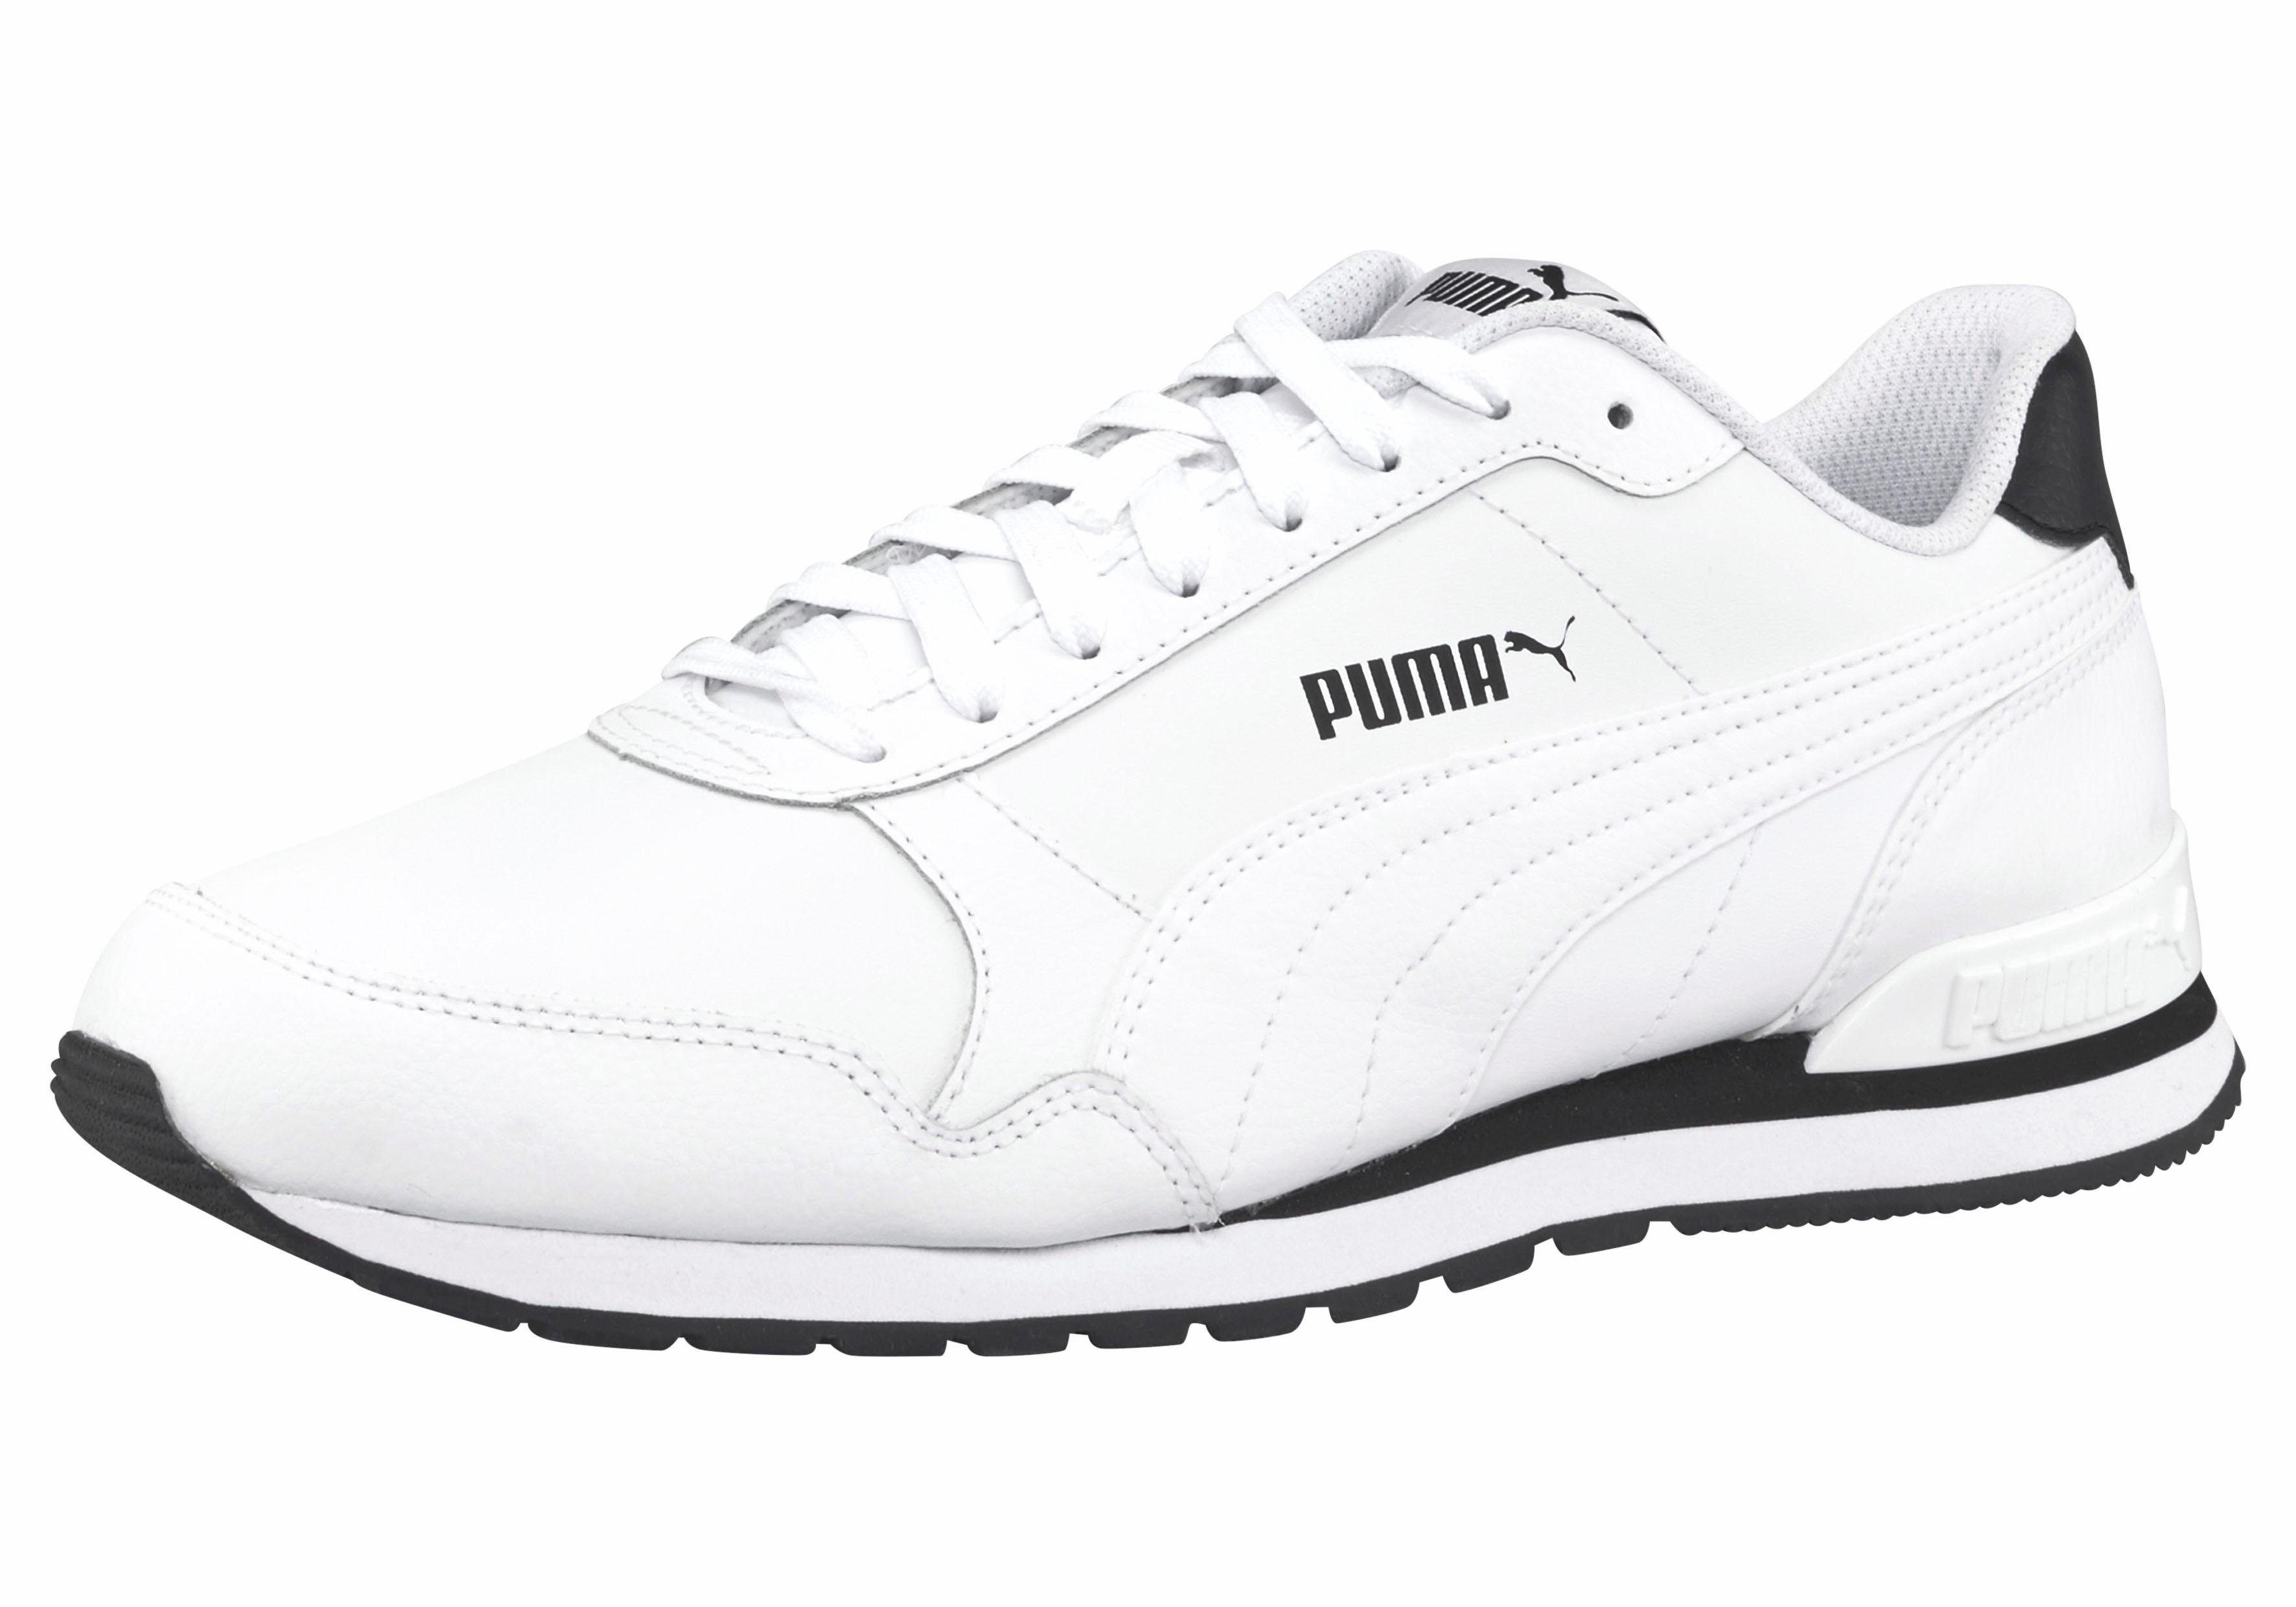 PUMA ST Runner v2 Full Leather Sneaker kaufen  weiß